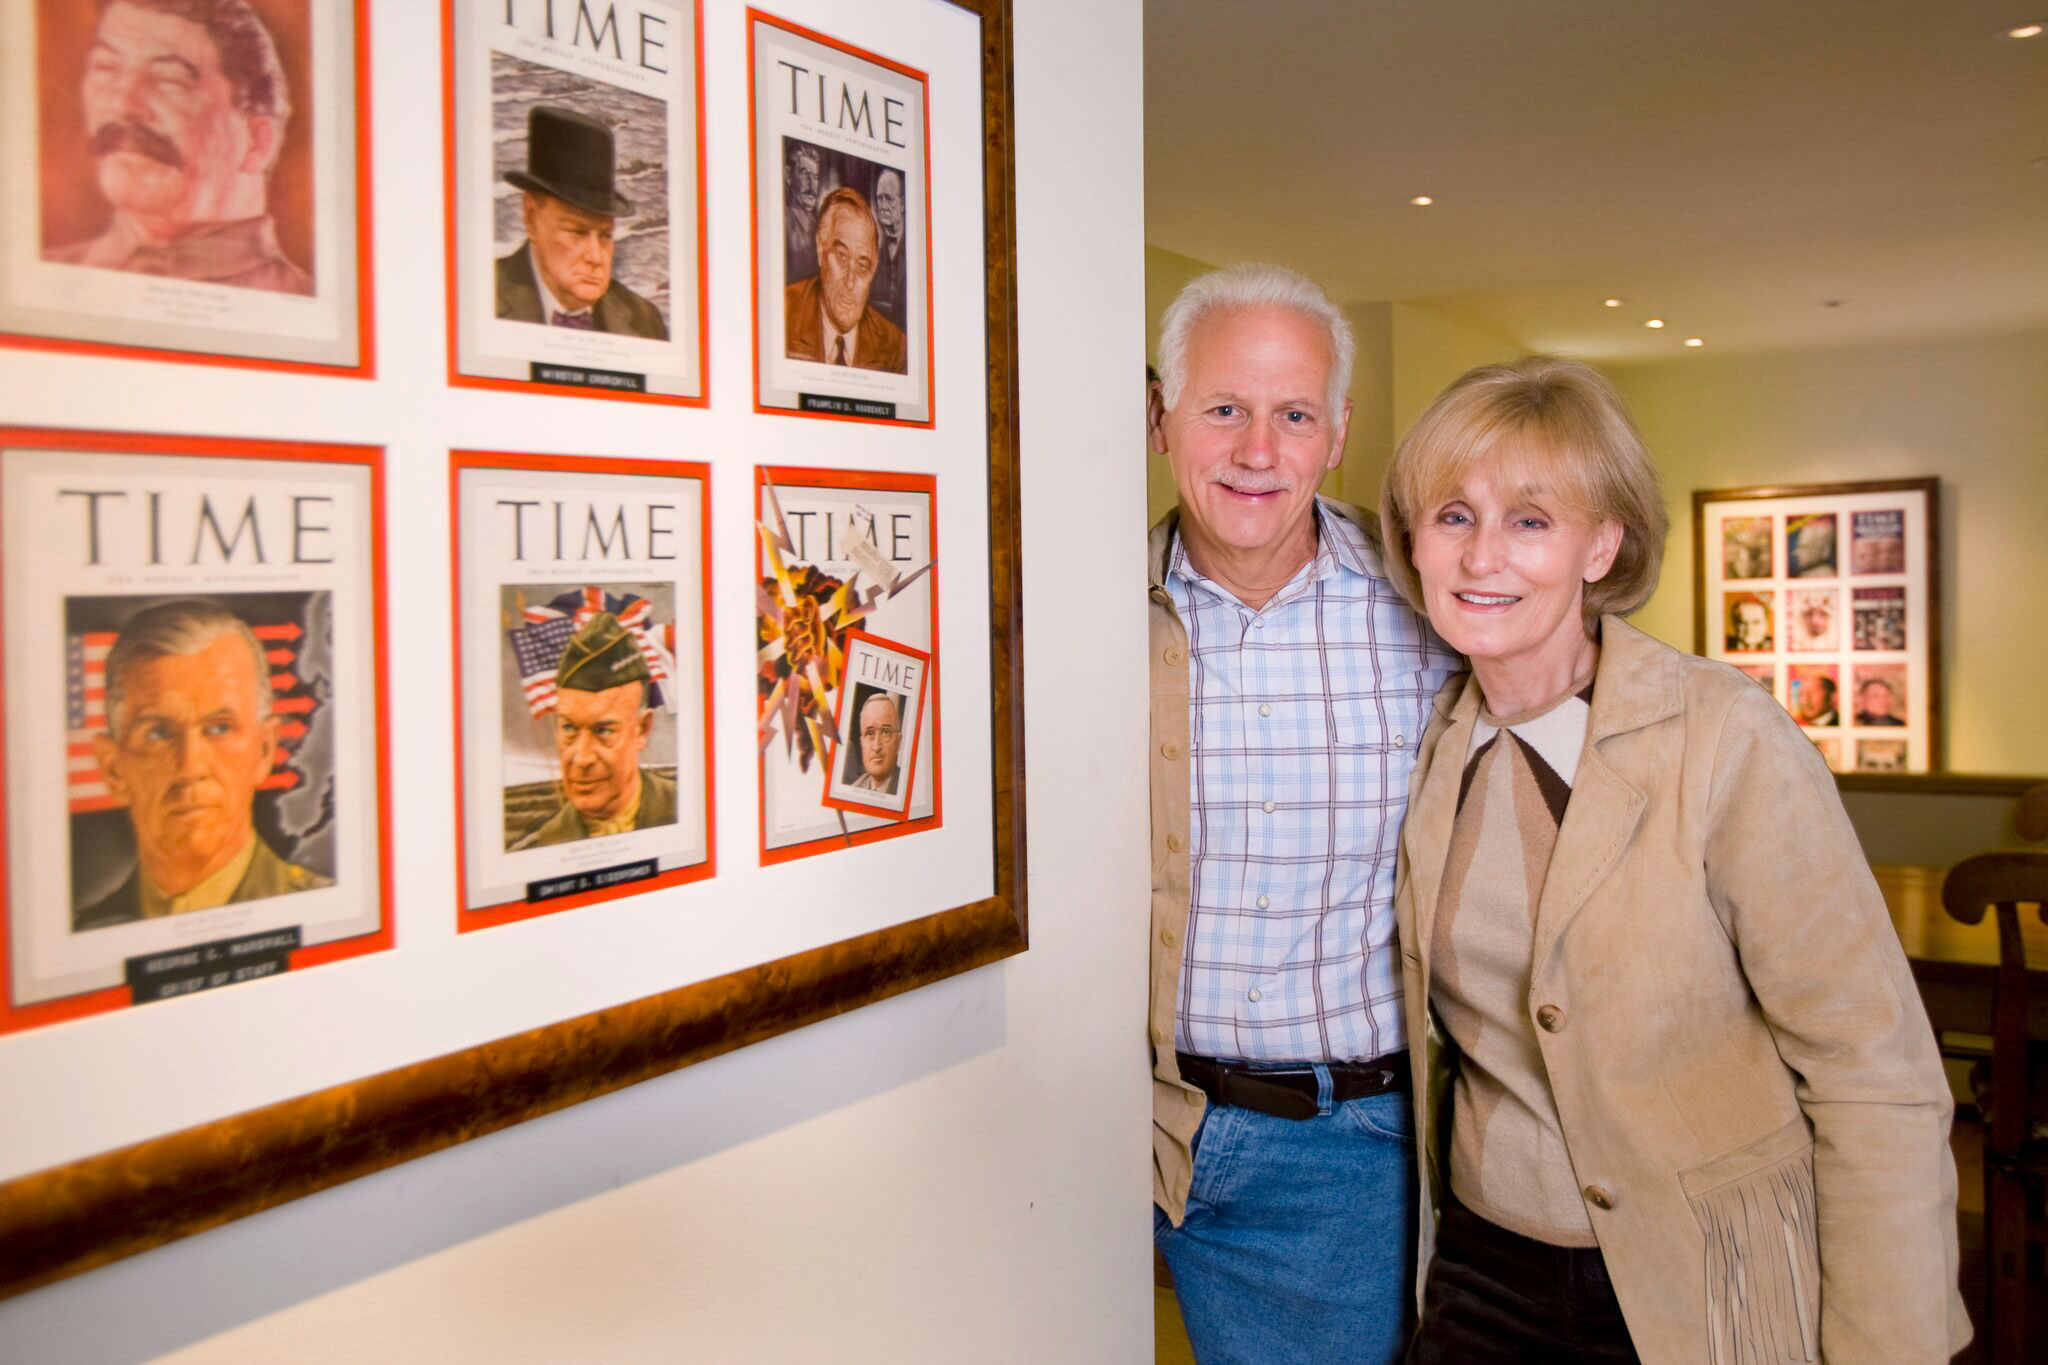 Ken Adelman and his wife, Carol, at their home in Aspen, Colo.